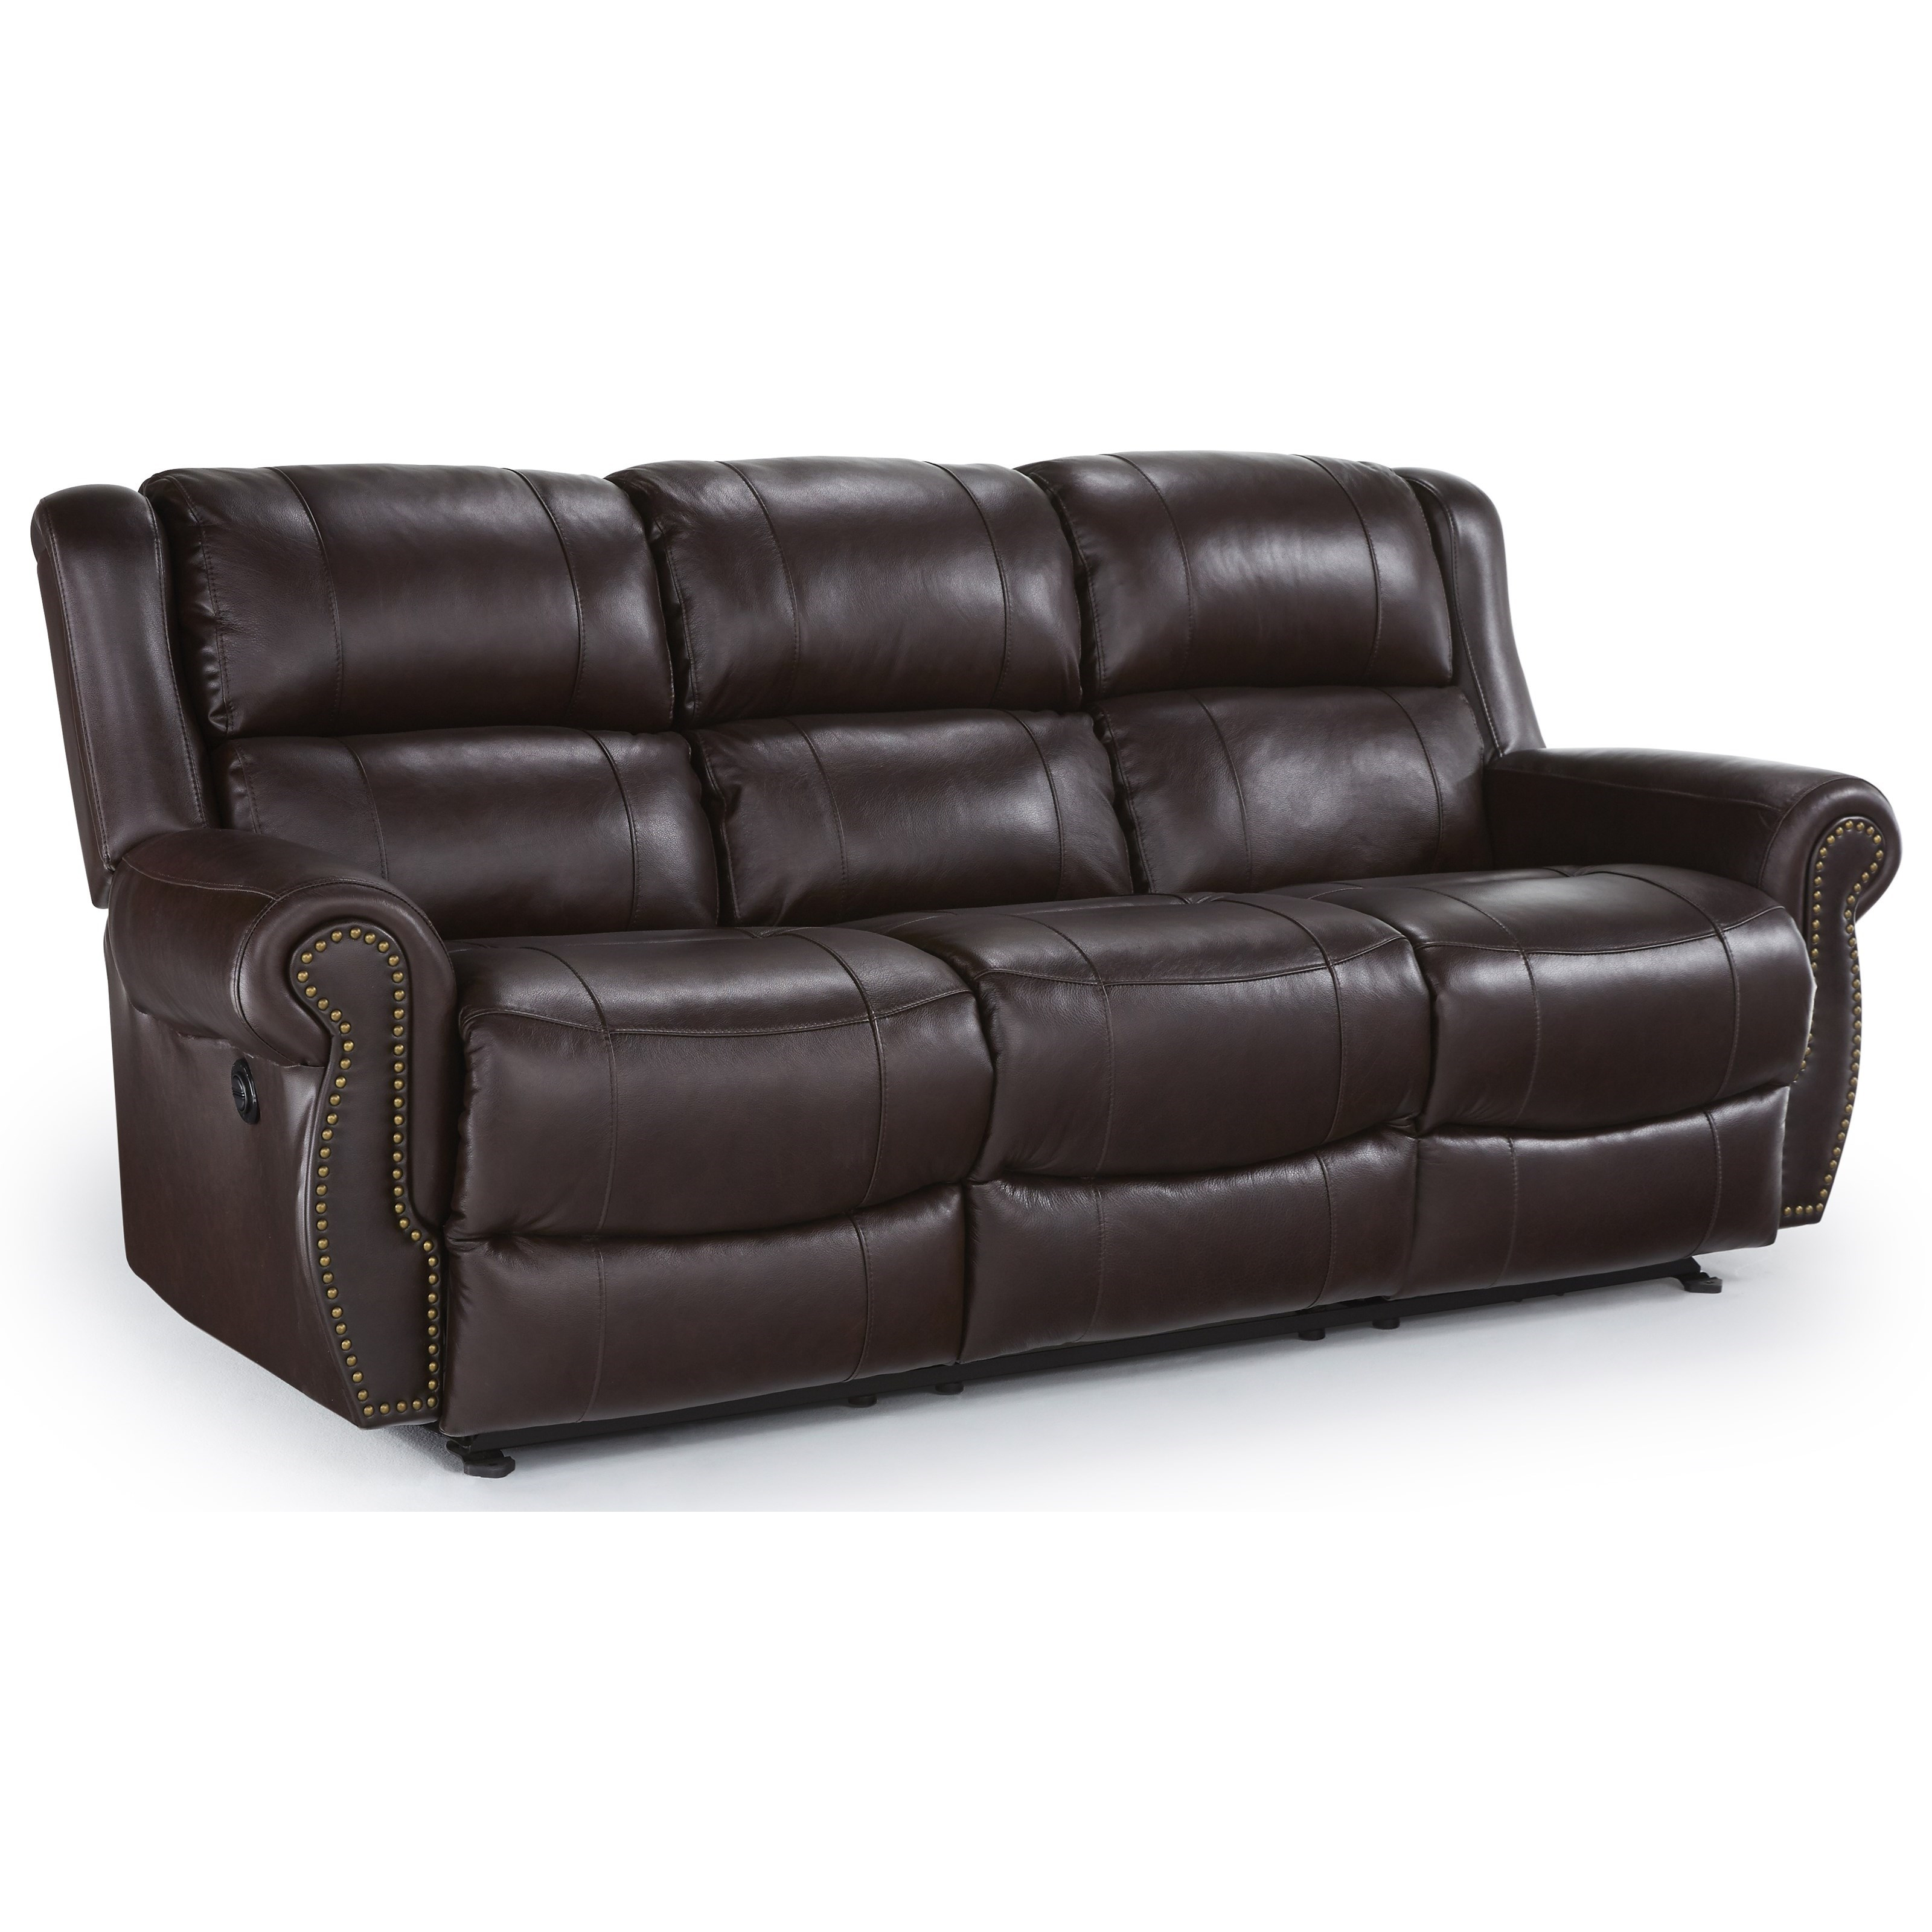 Terrill Transitional Power Space Saver Reclining Sofa by Best Home  Furnishings at Lindy\'s Furniture Company